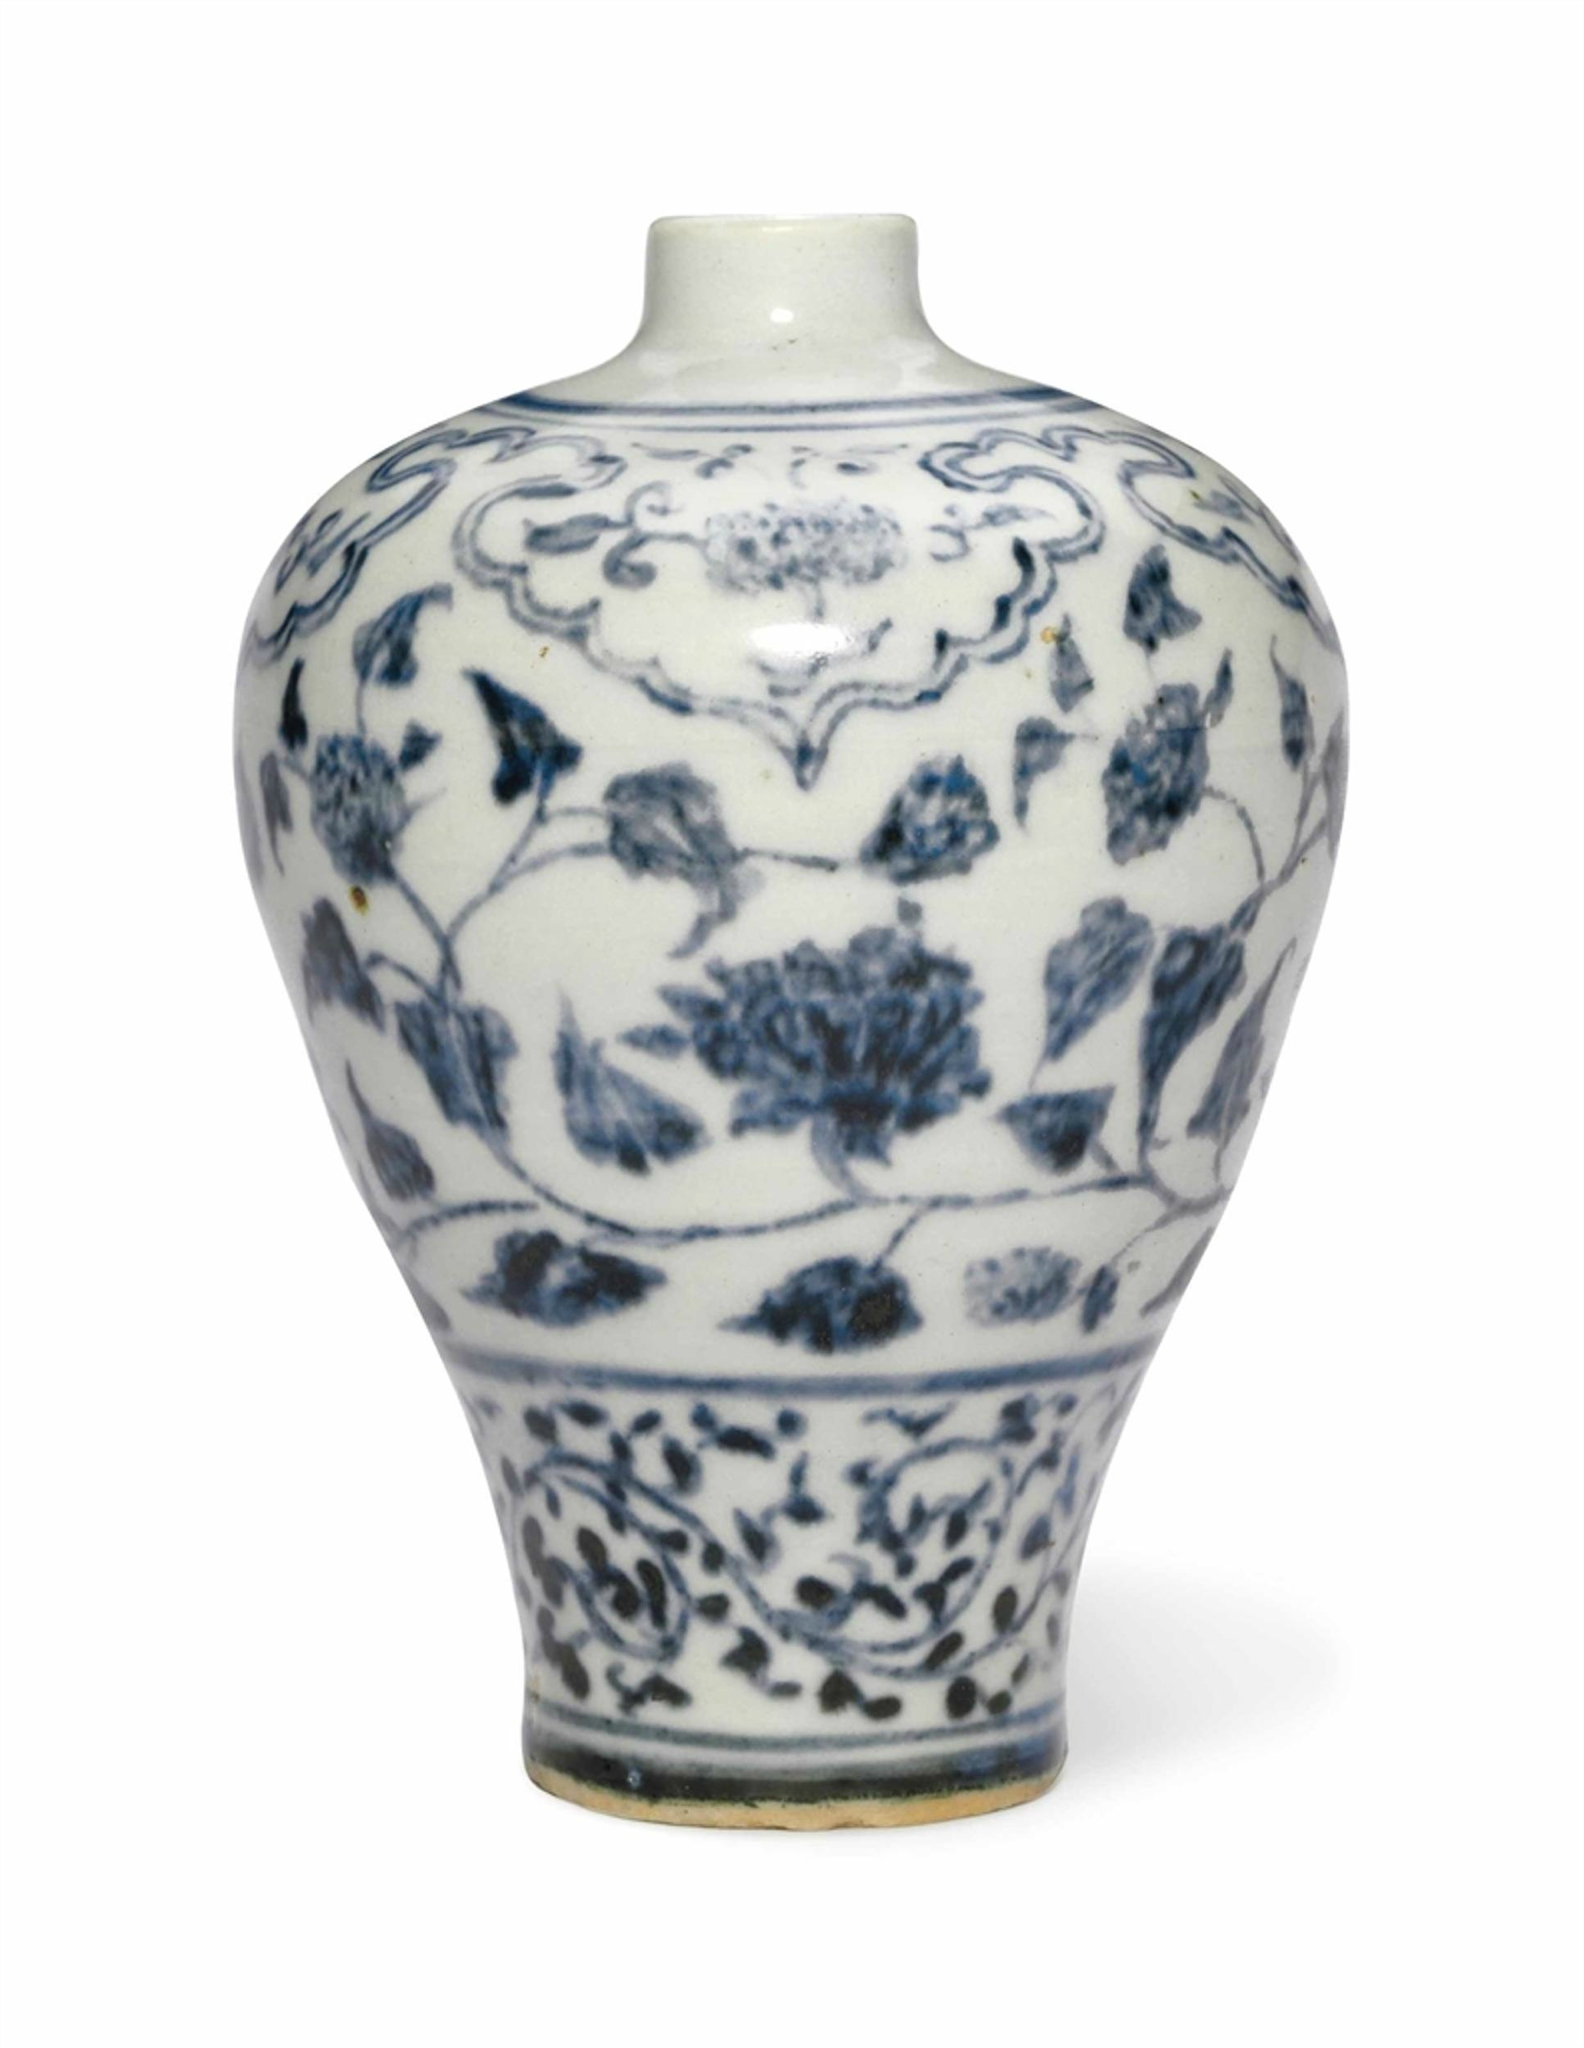 A small blue and white vase, meiping, Ming Dynasty, 15th-16th century